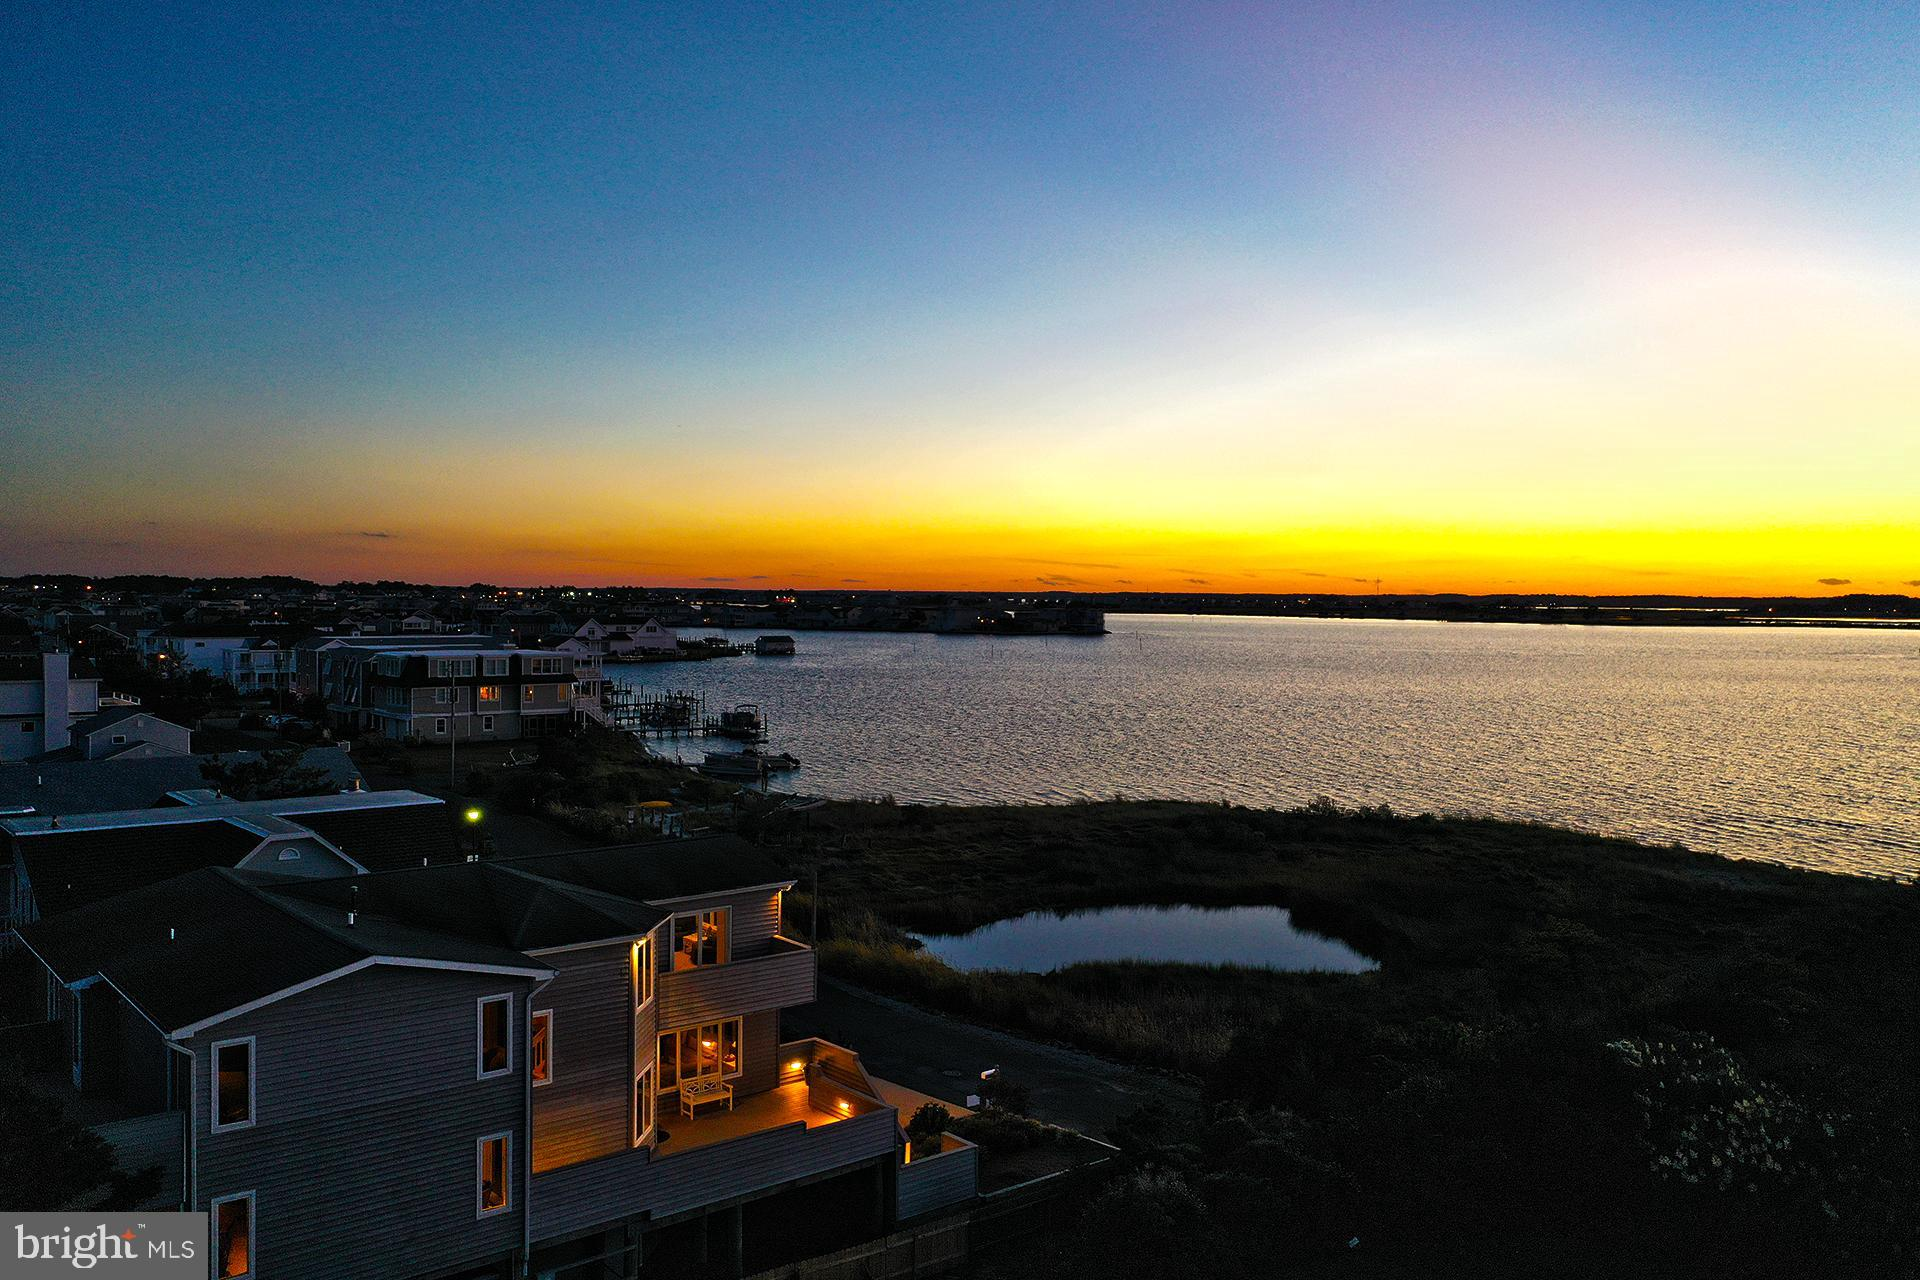 Welcome to the BEST panoramic views of the Little Assawoman Bay, located at the Northern tip of the Town of Fenwick Island, Delaware. This spectacular, Coastal Style, Custom-Built home offers 5 spacious bedrooms and spectacular views from every level as well as access to the Bay.  This home sits on approximately half an acre with property lines extending into the Bay.  This home includes 3 master suites with walk-in closets, 2 additional bedrooms, a spacious kitchen with a large island and walk-in pantry which leads to a screened in porch for enjoying outdoor eating.  The dining and living areas  take advantage of amazing sunsets over the Little Assawoman Bay.  The living room features a gas fireplace and built-ins that are enhanced with backlighting that make enjoying the incredible sunsets that much more relaxing.  Sunsets are also viewed from the owners' suite, owners' suite balcony and the living room deck area.  The home's outdoor features include beautiful landscaping, ample parking  for 8 cars (4 in the driveway, 4 under the home), kayak storage, patio area, 2 outside showers, and 2 secured storage rooms.  3 decks and 1 balcony provide ample outside entertaining and views of Fenwick Island and the Little Assawoman Bay.  The home has a water softener and filtration system, 2 gas hot water heaters, as well as 2 zoned heating and air conditioning.  The bottom HVAC unit is a heat pump with propane backup for those cold nights when you need more efficiency.  This delightful home sits on the Northern most waterfront lot in the Town of Fenwick Island and is a little over half an acre in size.  Don't let this opportunity pass you by.  Call to setup your tour today!